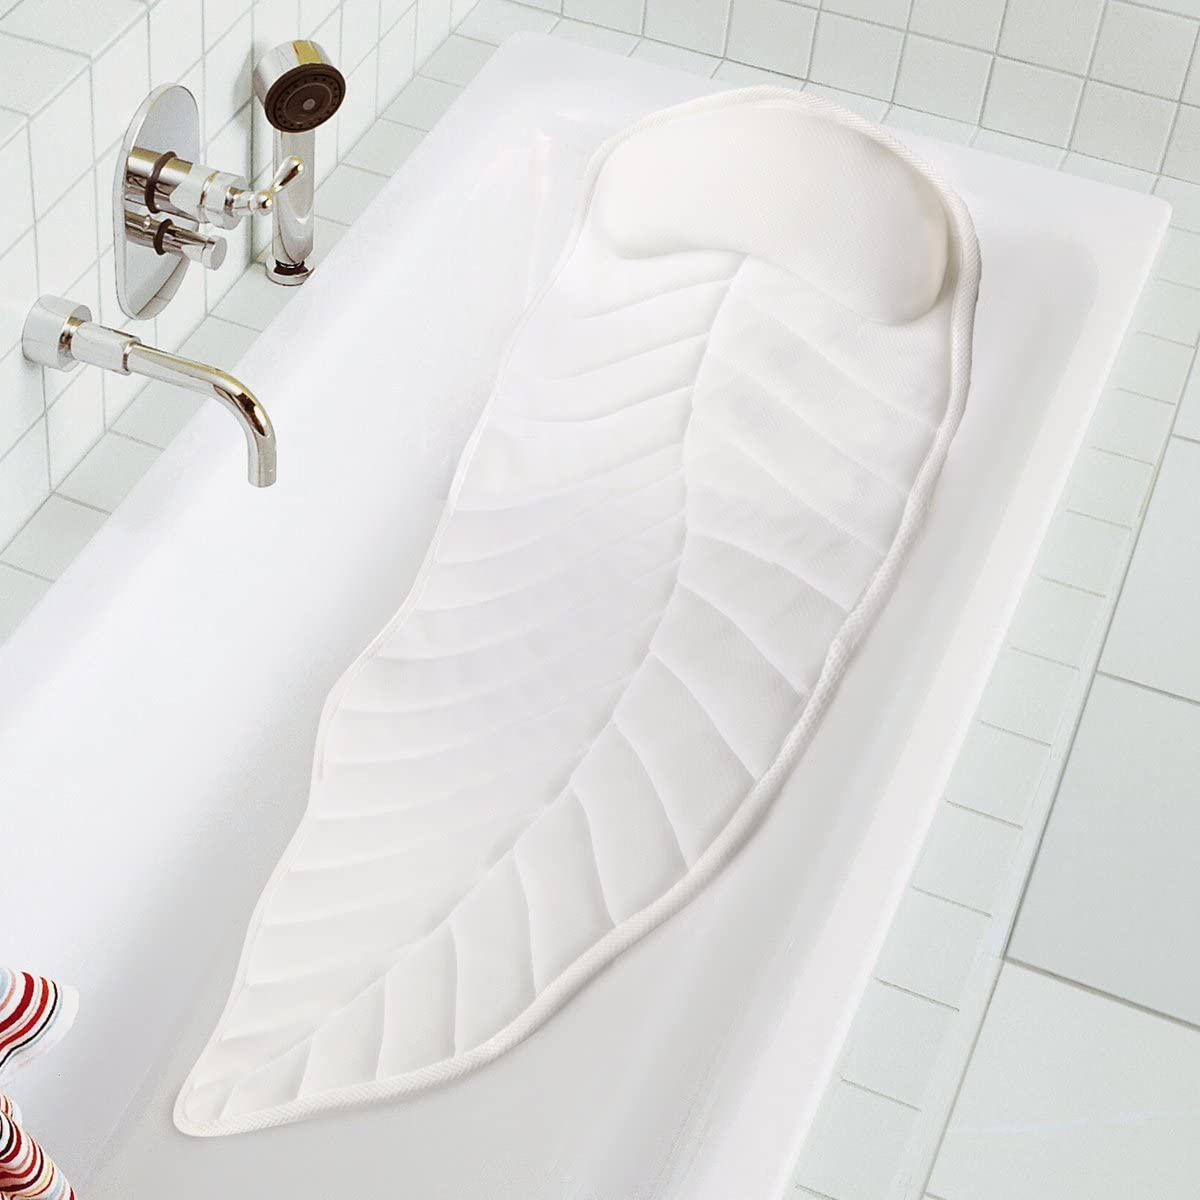 Full Body Spa Bath Pillow Cushion Bathtub Cushion Mattress With 8